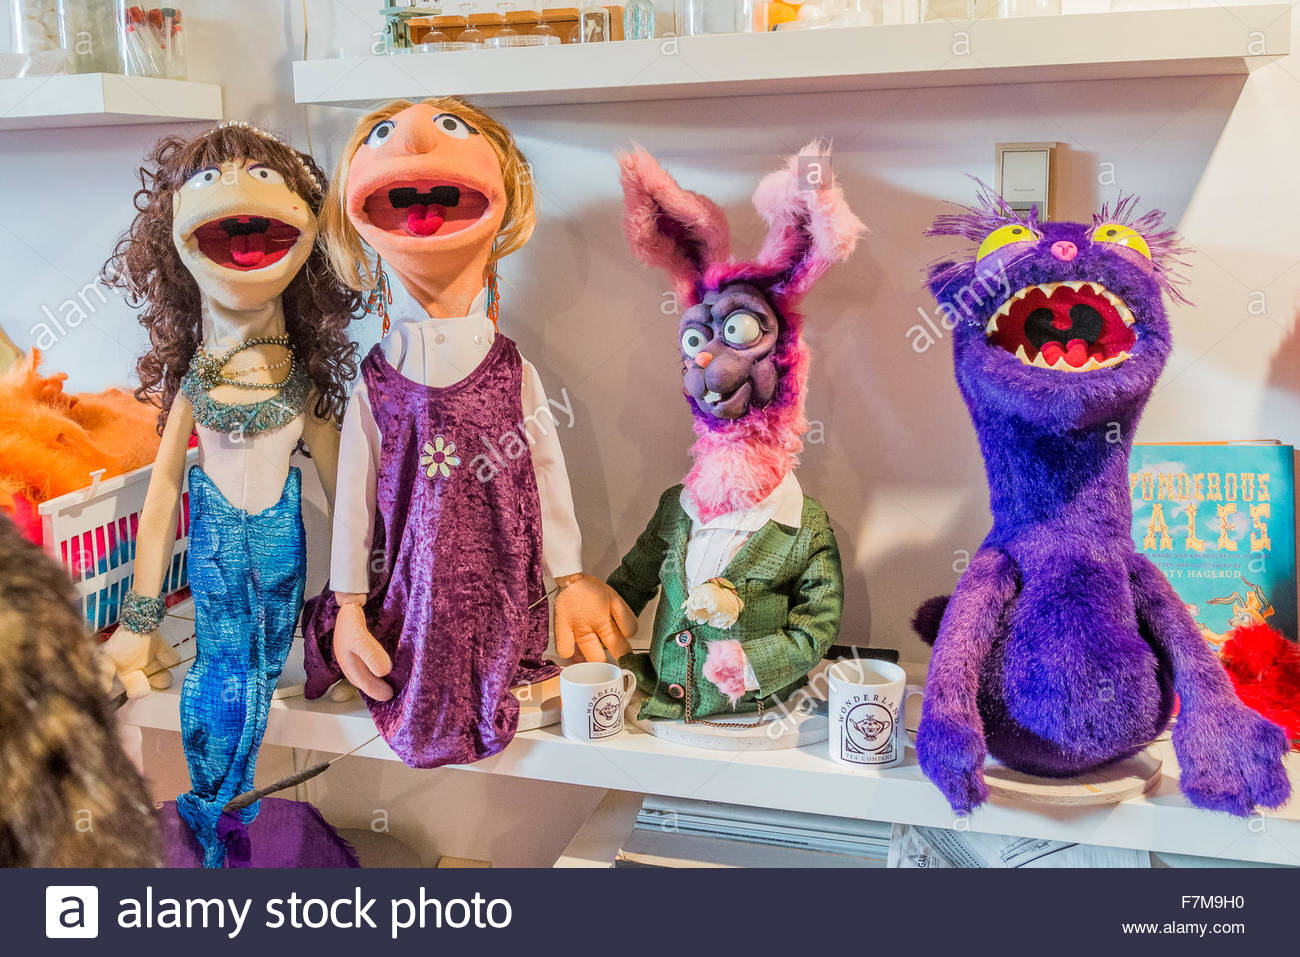 Alice in Wonderland puppets, Arc building, East Side Culture Crawl, Vancouver, British Columbia*, Canada - Stock Image